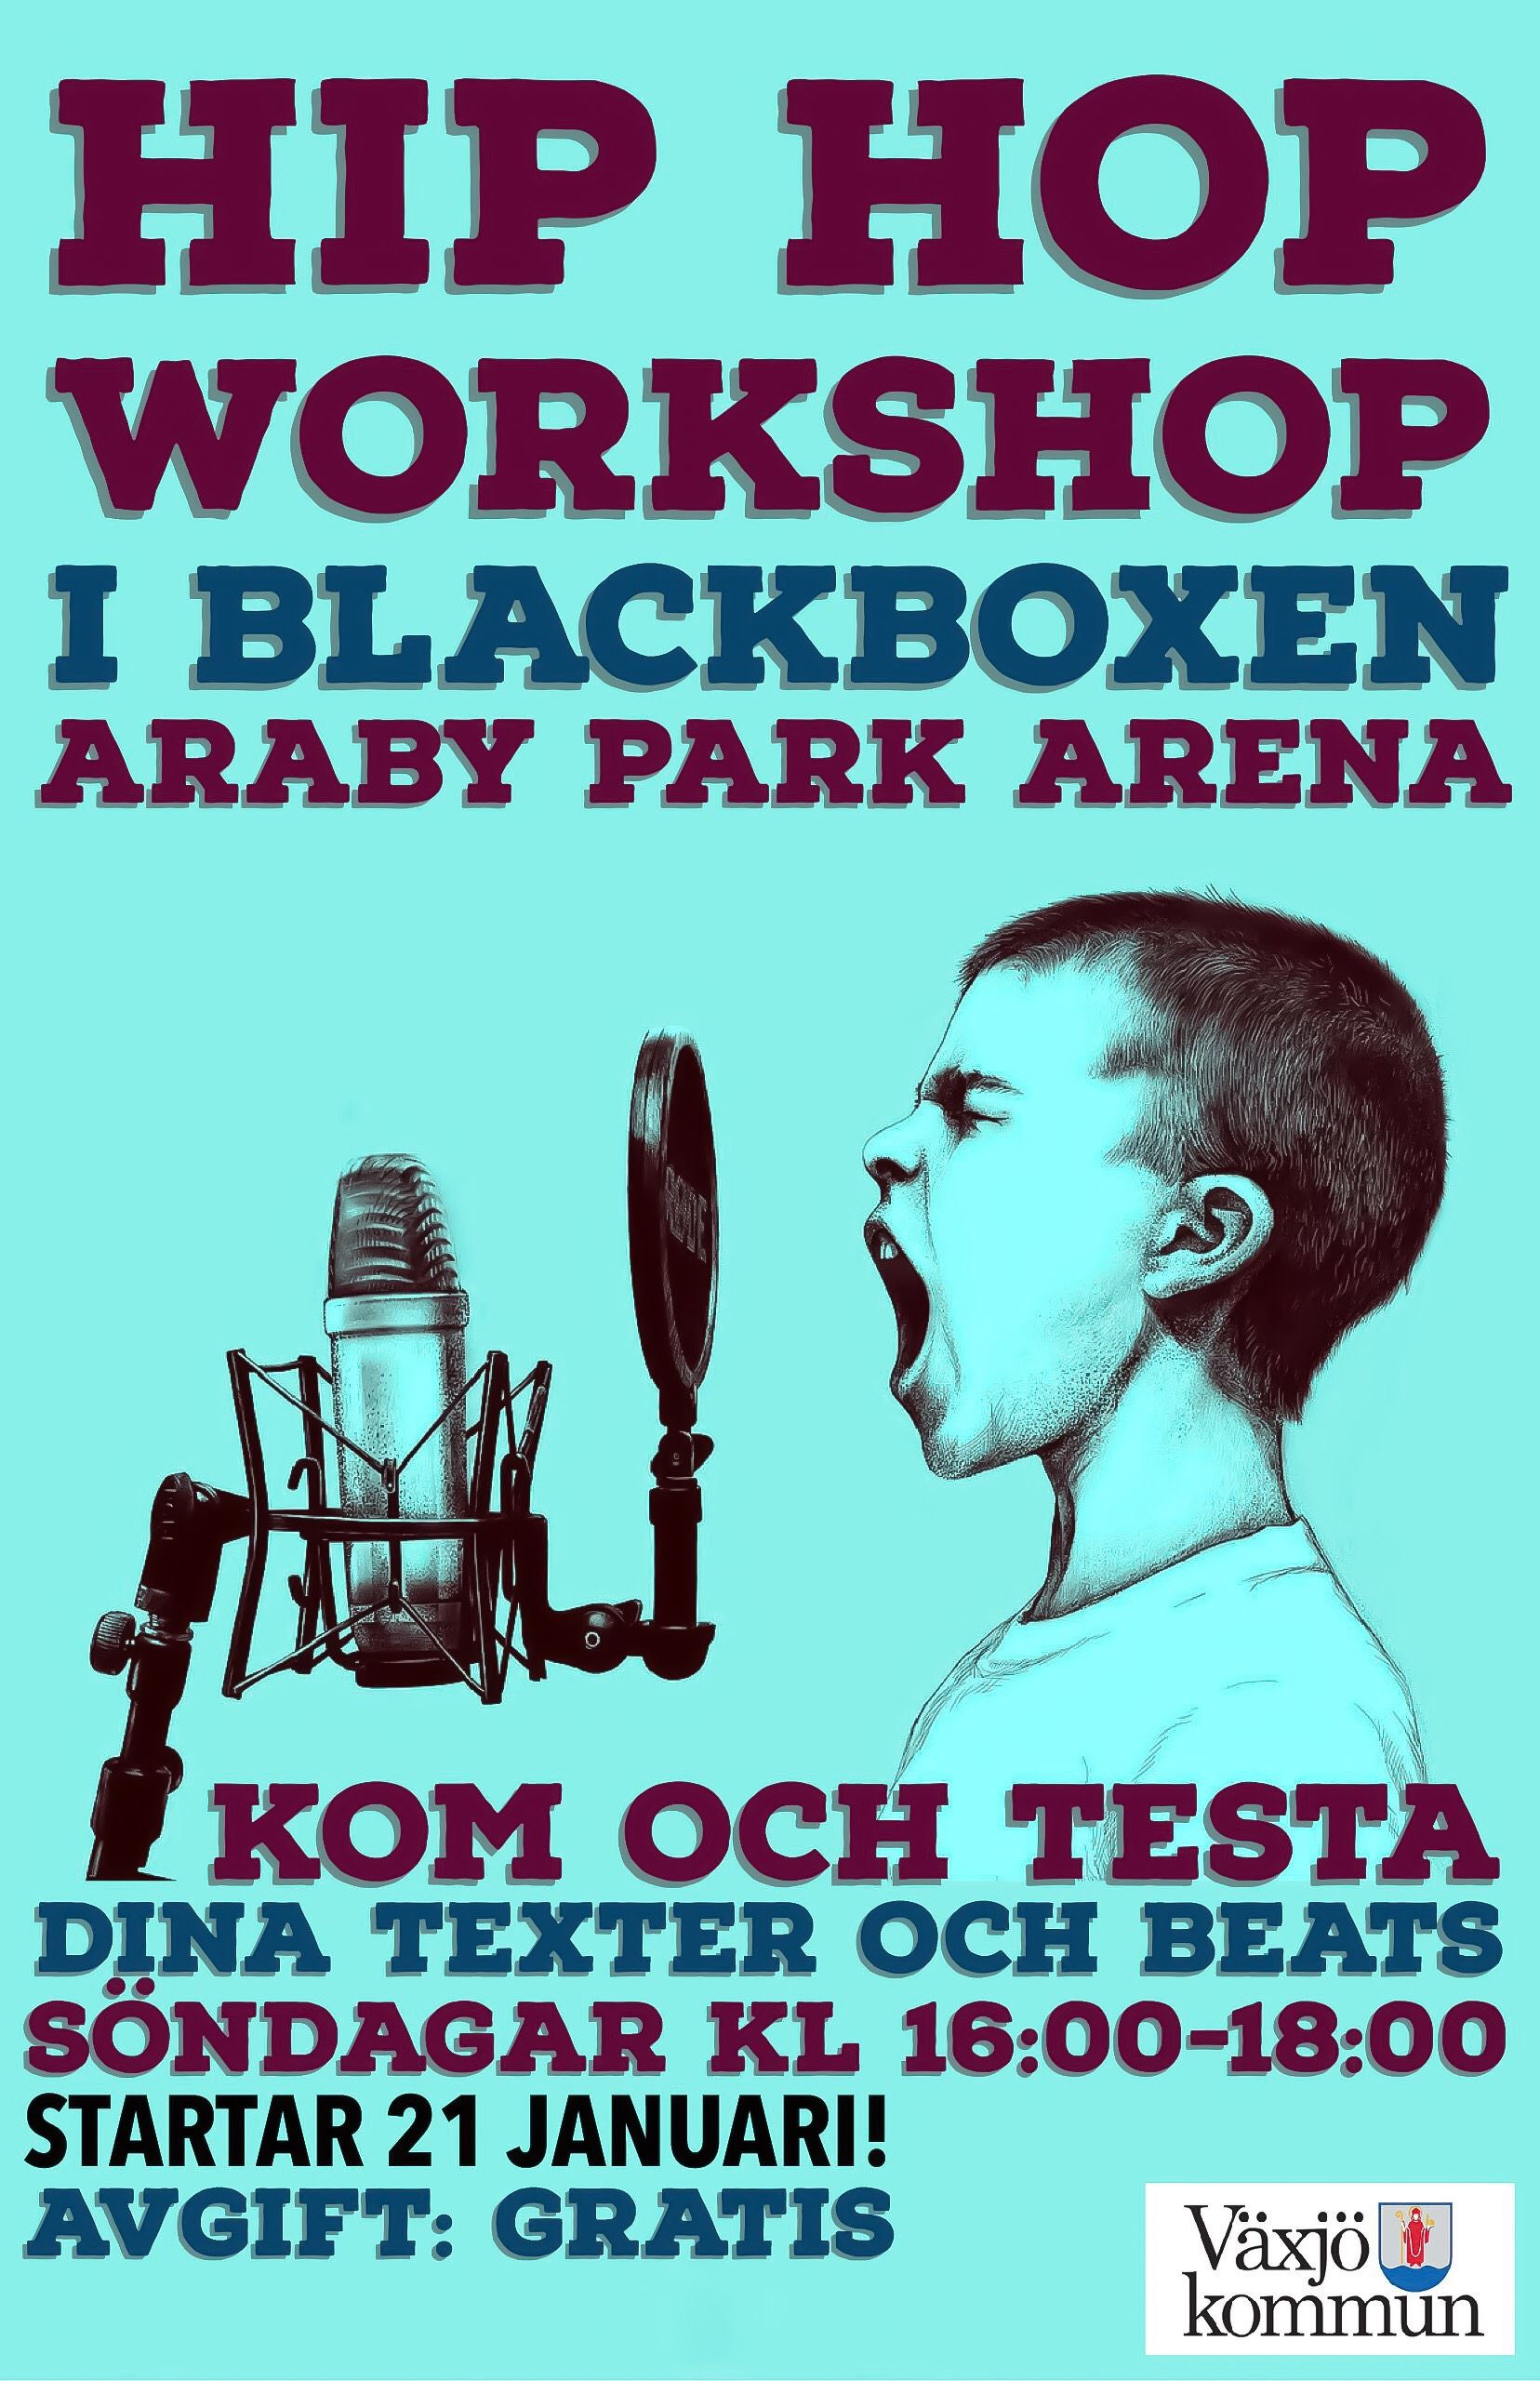 Workshop: Hip-hop